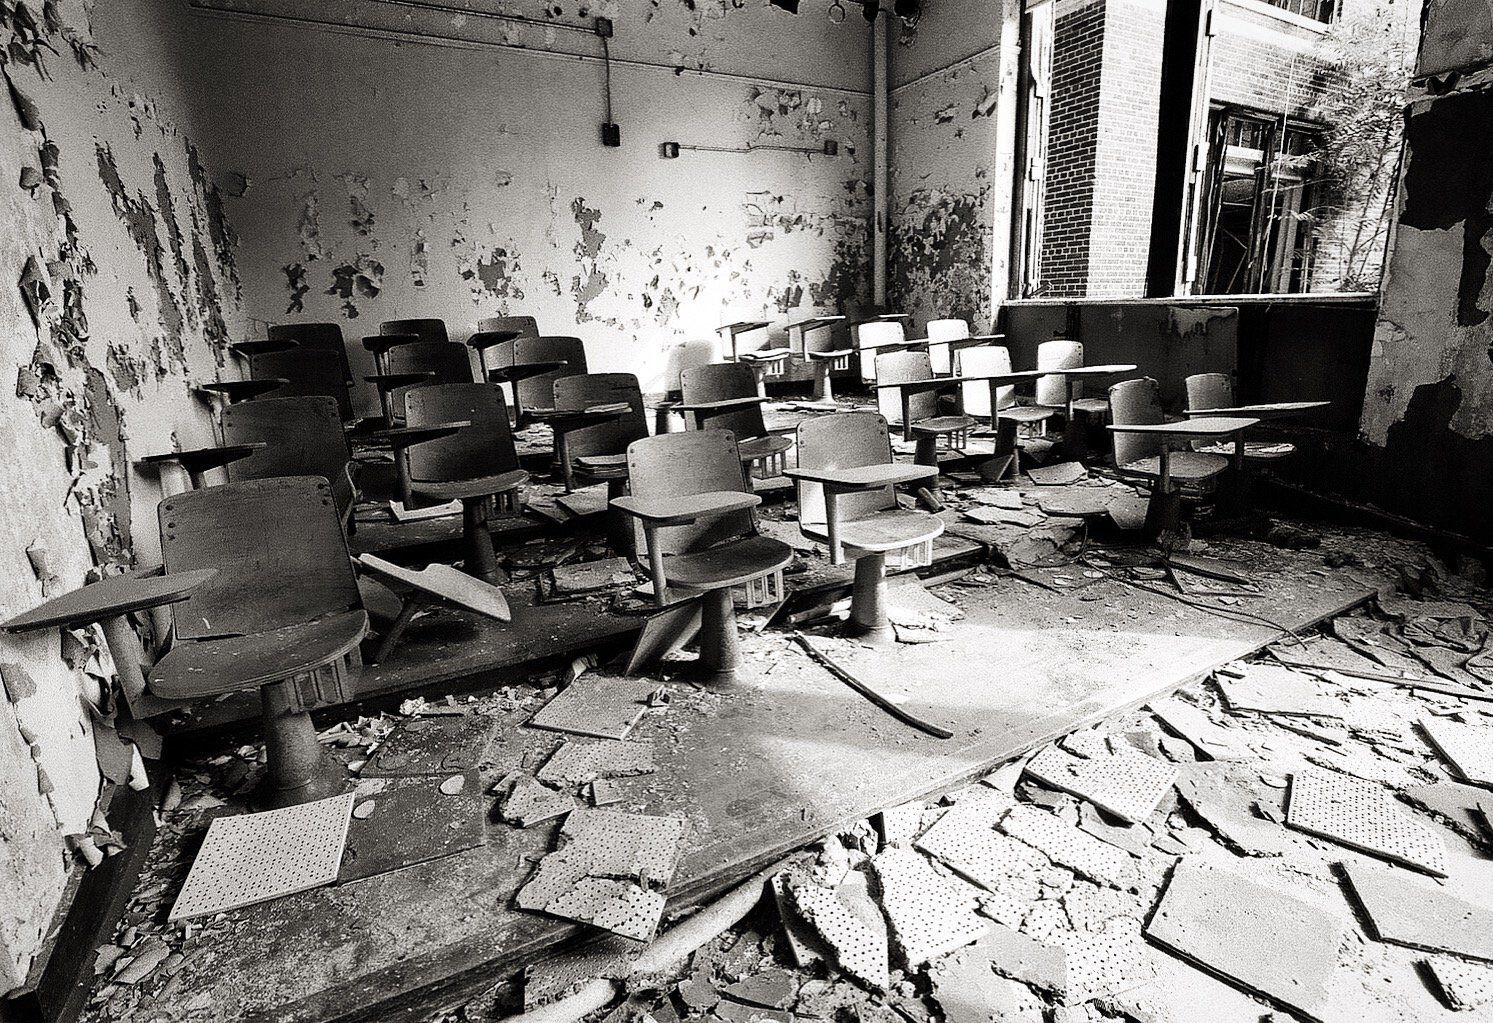 Detroit Photography Black White Photo Abandoned School Classroom Photography Prints Art Black And White Photography Print